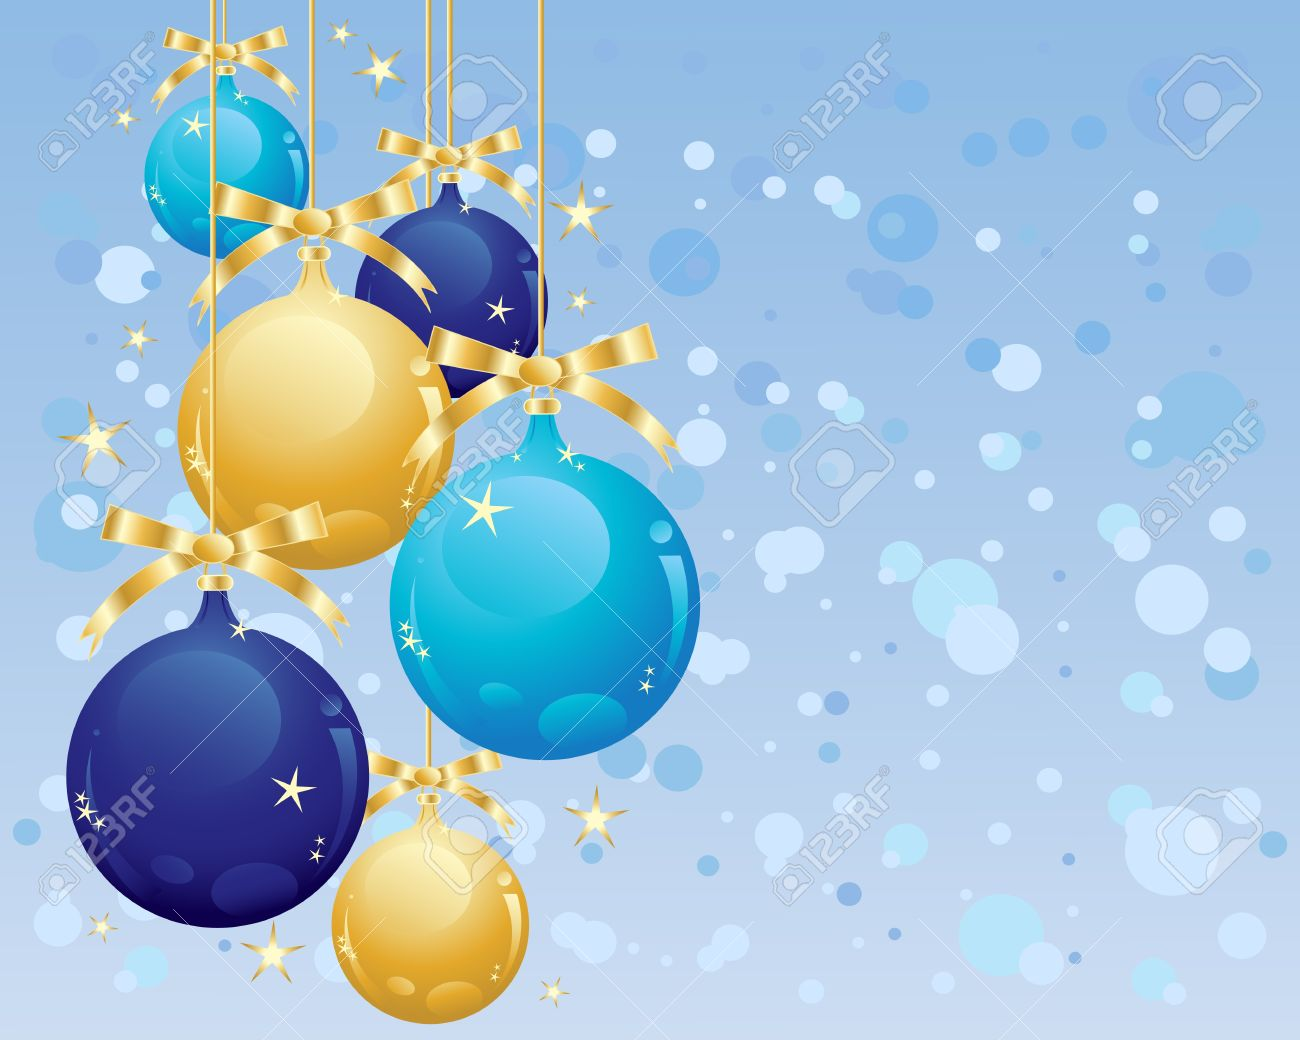 an illustration of metallic gold and blue bauble christmas decorations and ribbon on golden thread with a background of abstract snowflakes Stock Vector - 15603185